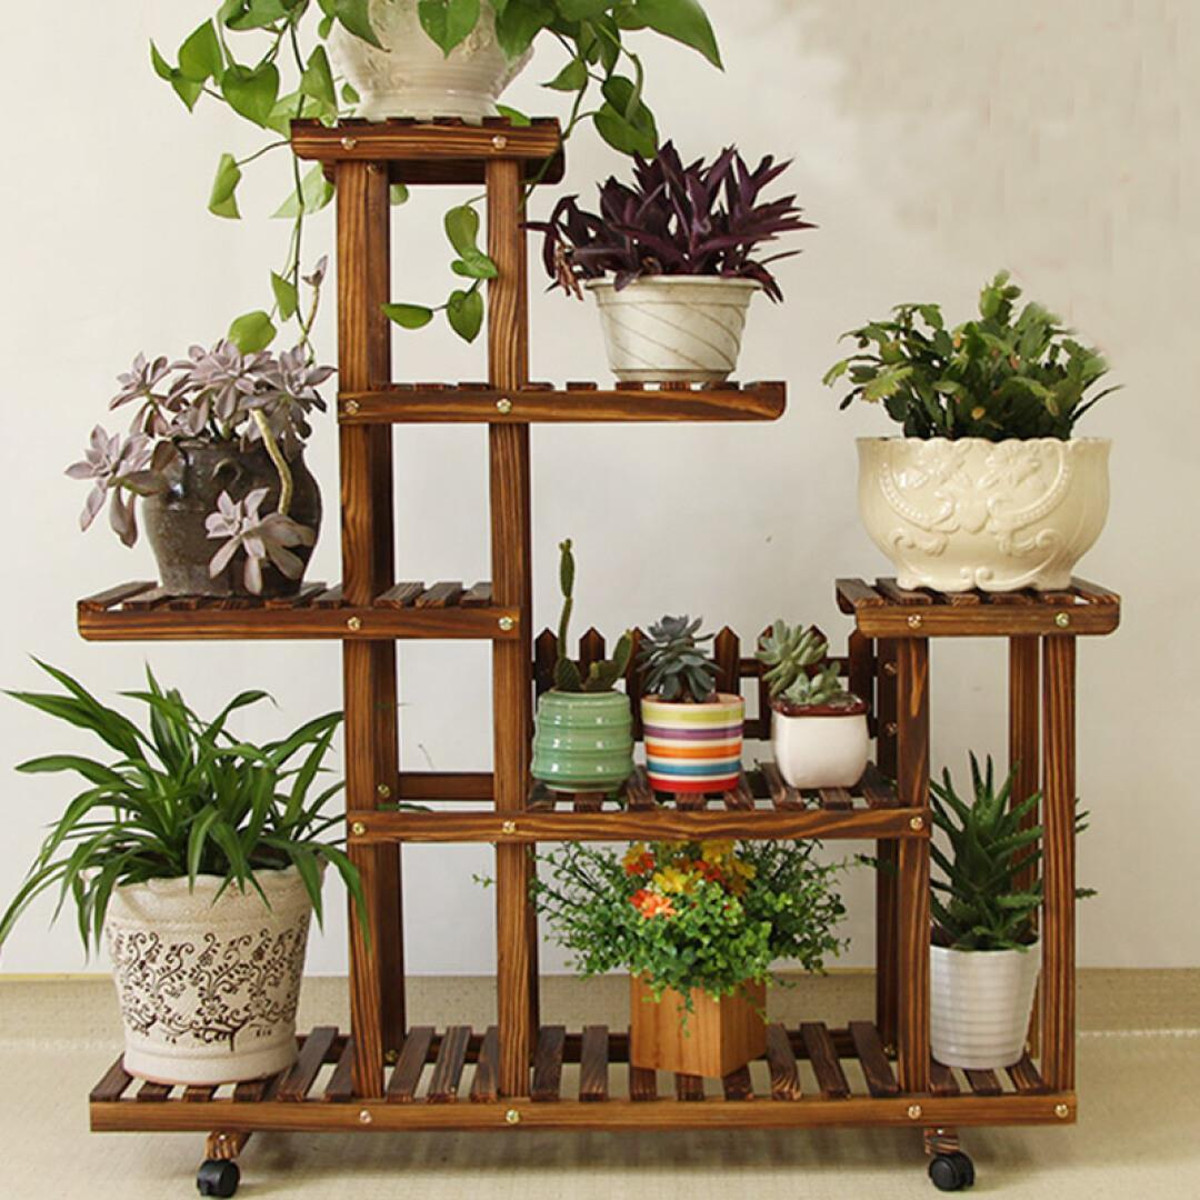 Big Plant Stand New Pine Wooden Plant Stand Indoor Outdoor Garden Planter